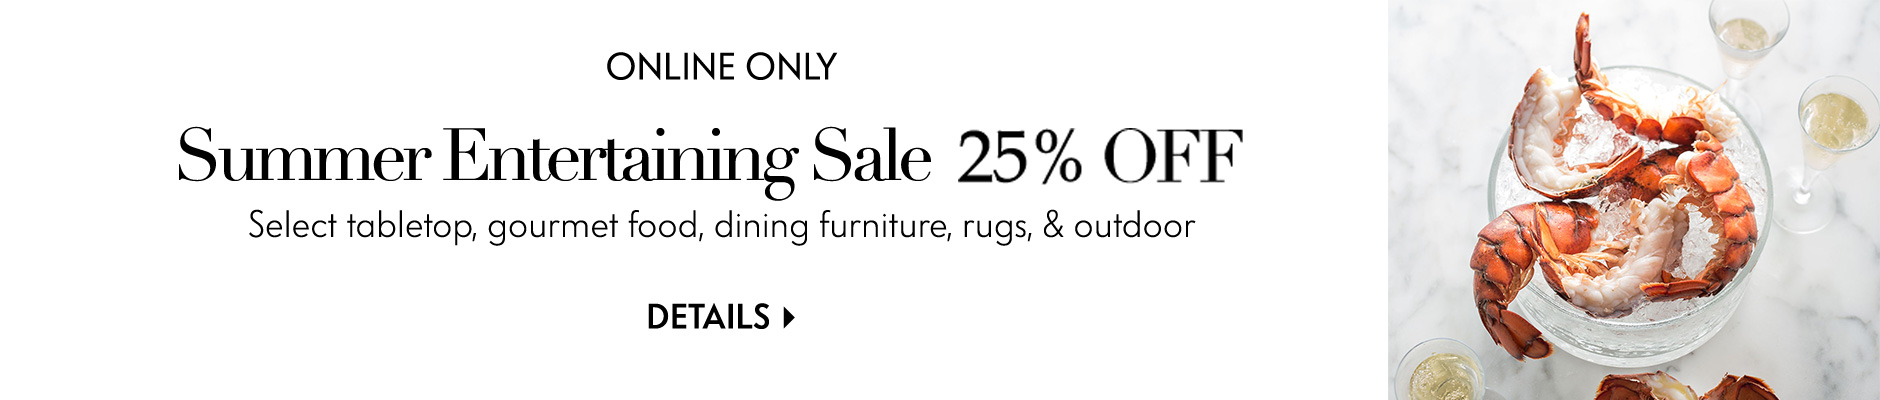 Summer Entertaining Sale - 25% off select tabletop, gourmet food, dining furniture, rugs, & outdoor